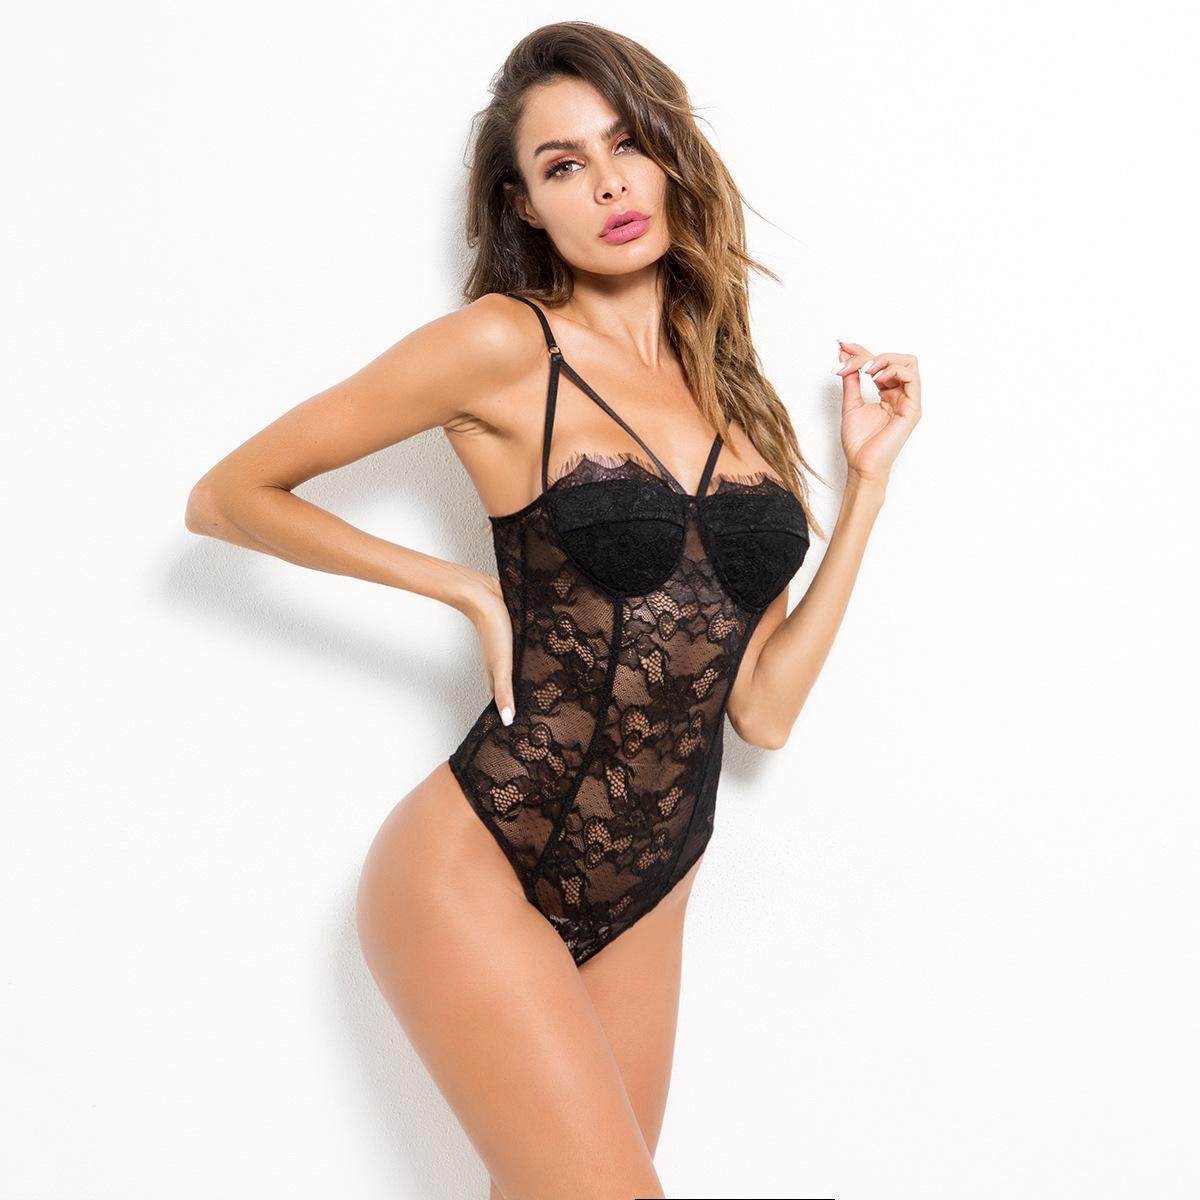 4b37e5d9dab Rebella 2018 Foreign Trade European And American Women SEXY Sexy Lingerie  Lace Temptation Perspective Conjoined Clothing In Stock Lingerie Set Sexy  Corsets ...